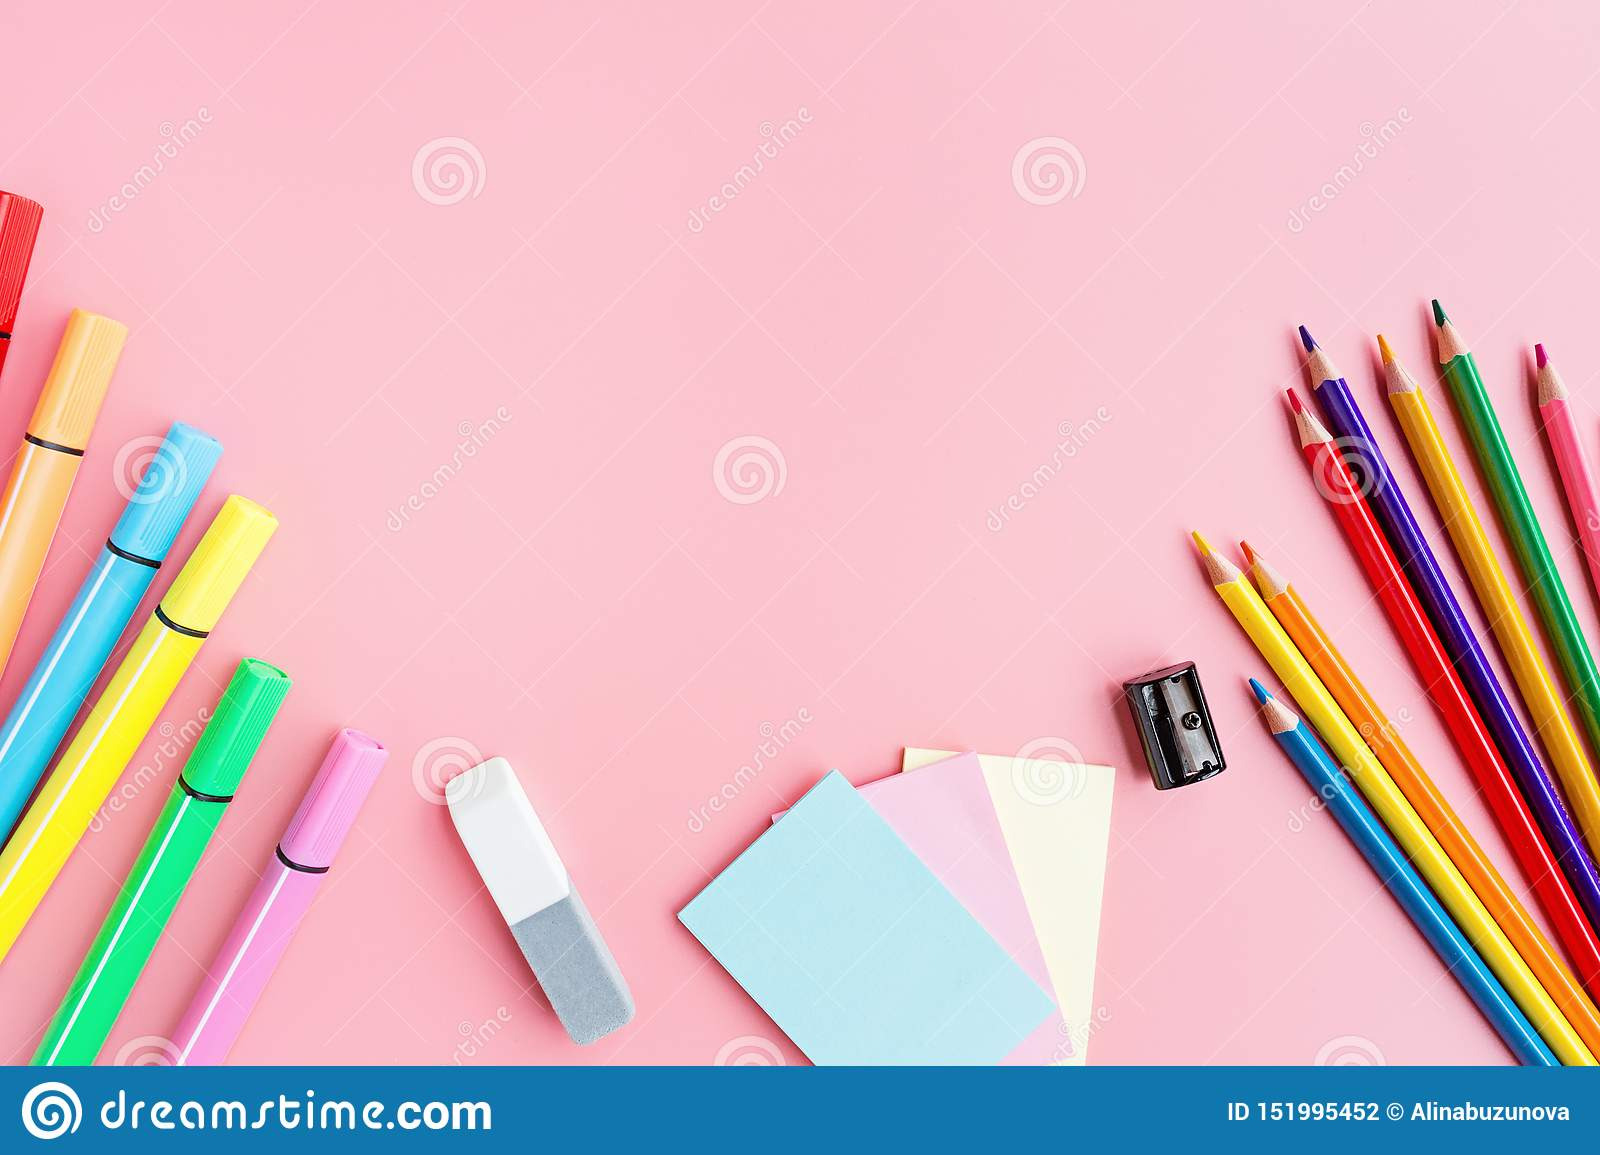 Space product stationery and school supplies